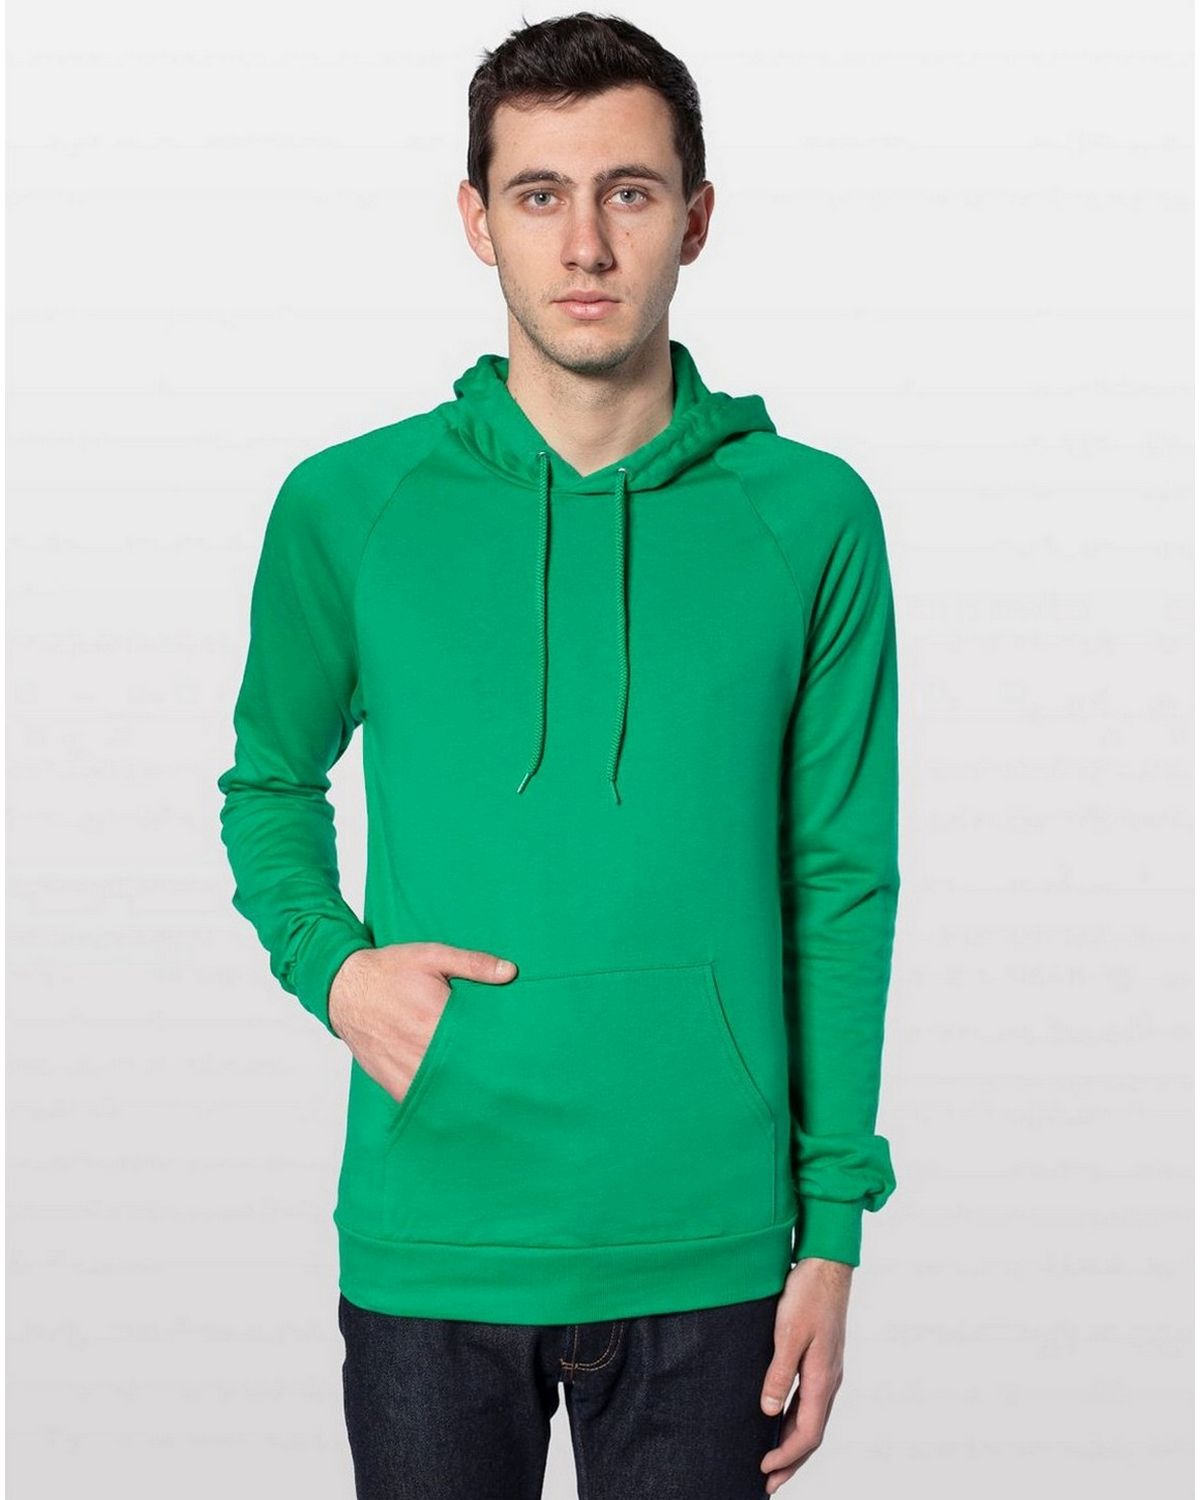 American Apparel 5495 Pullover Hoodie - Kelly Green - L 5495